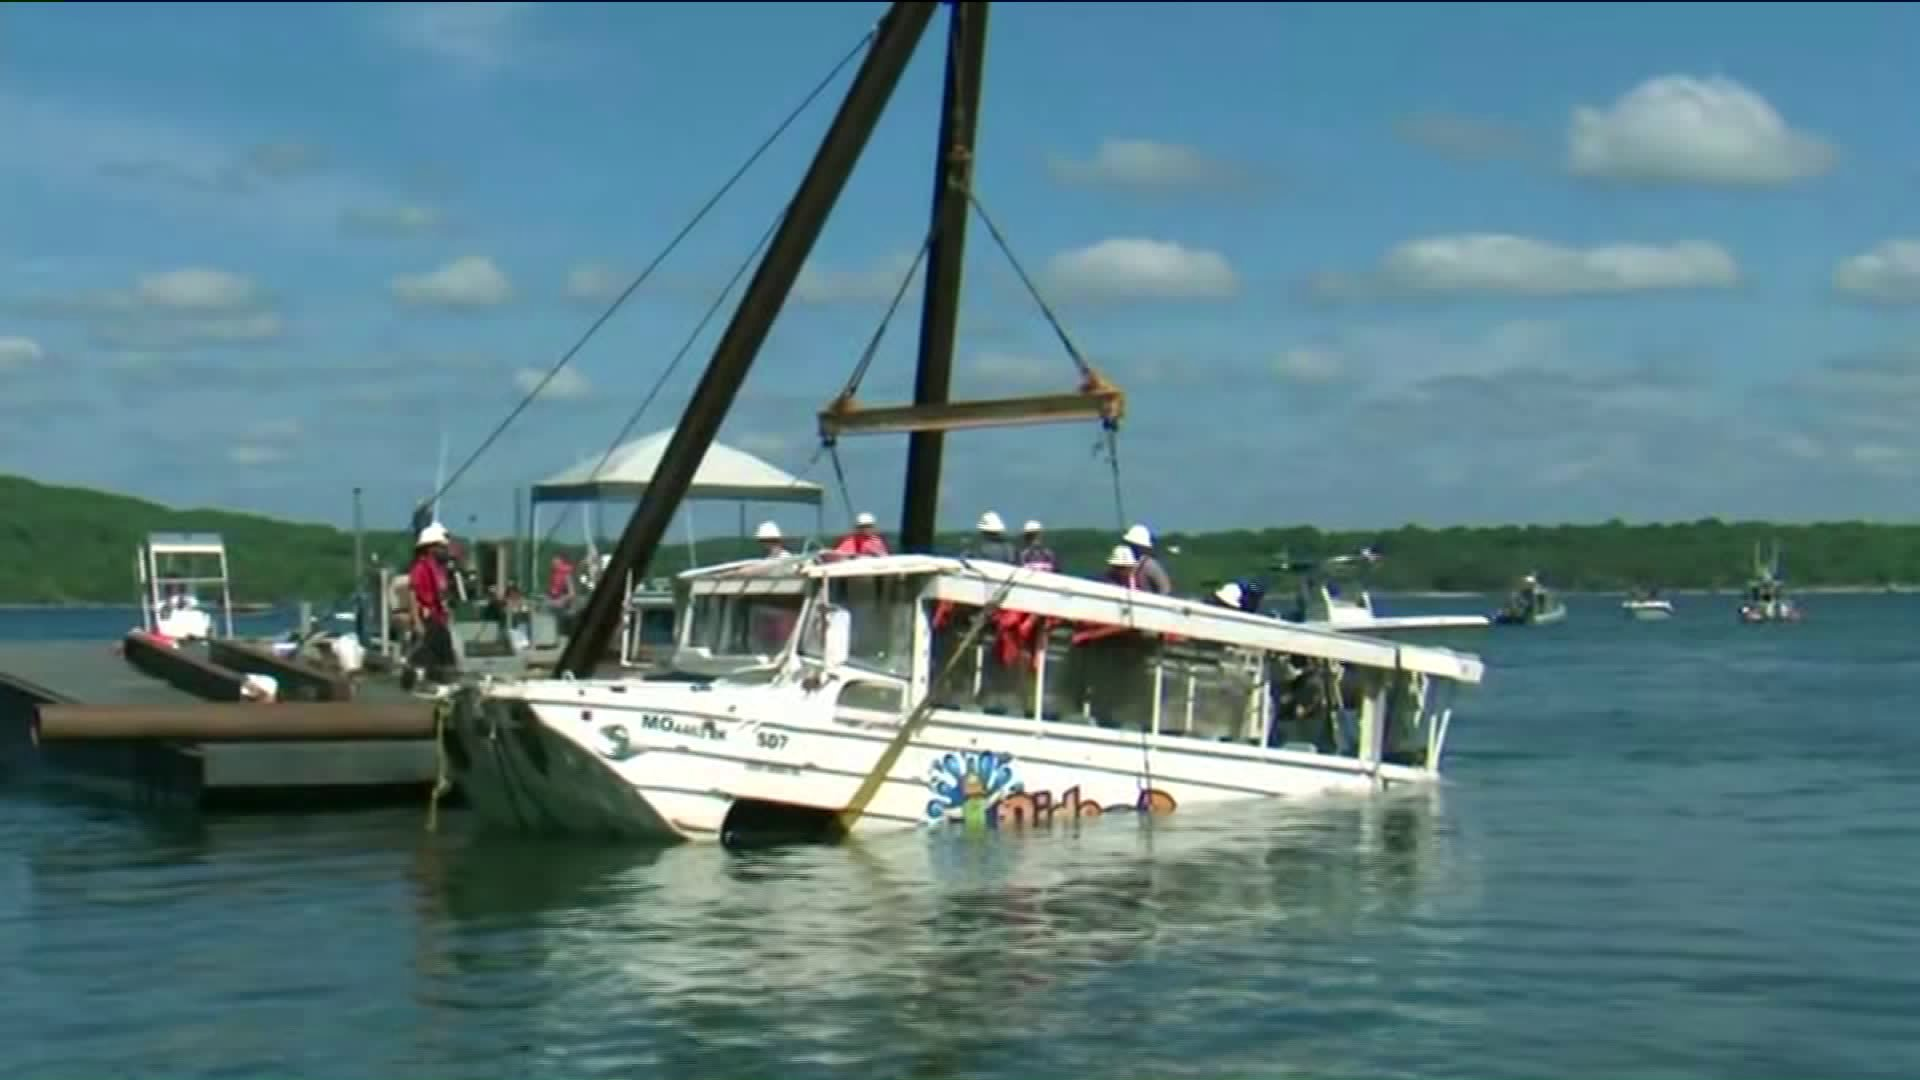 Captain Of Duck Boat That Sank Near Branson Indicted On 17 Counts Of 'Seaman's Manslaughter'